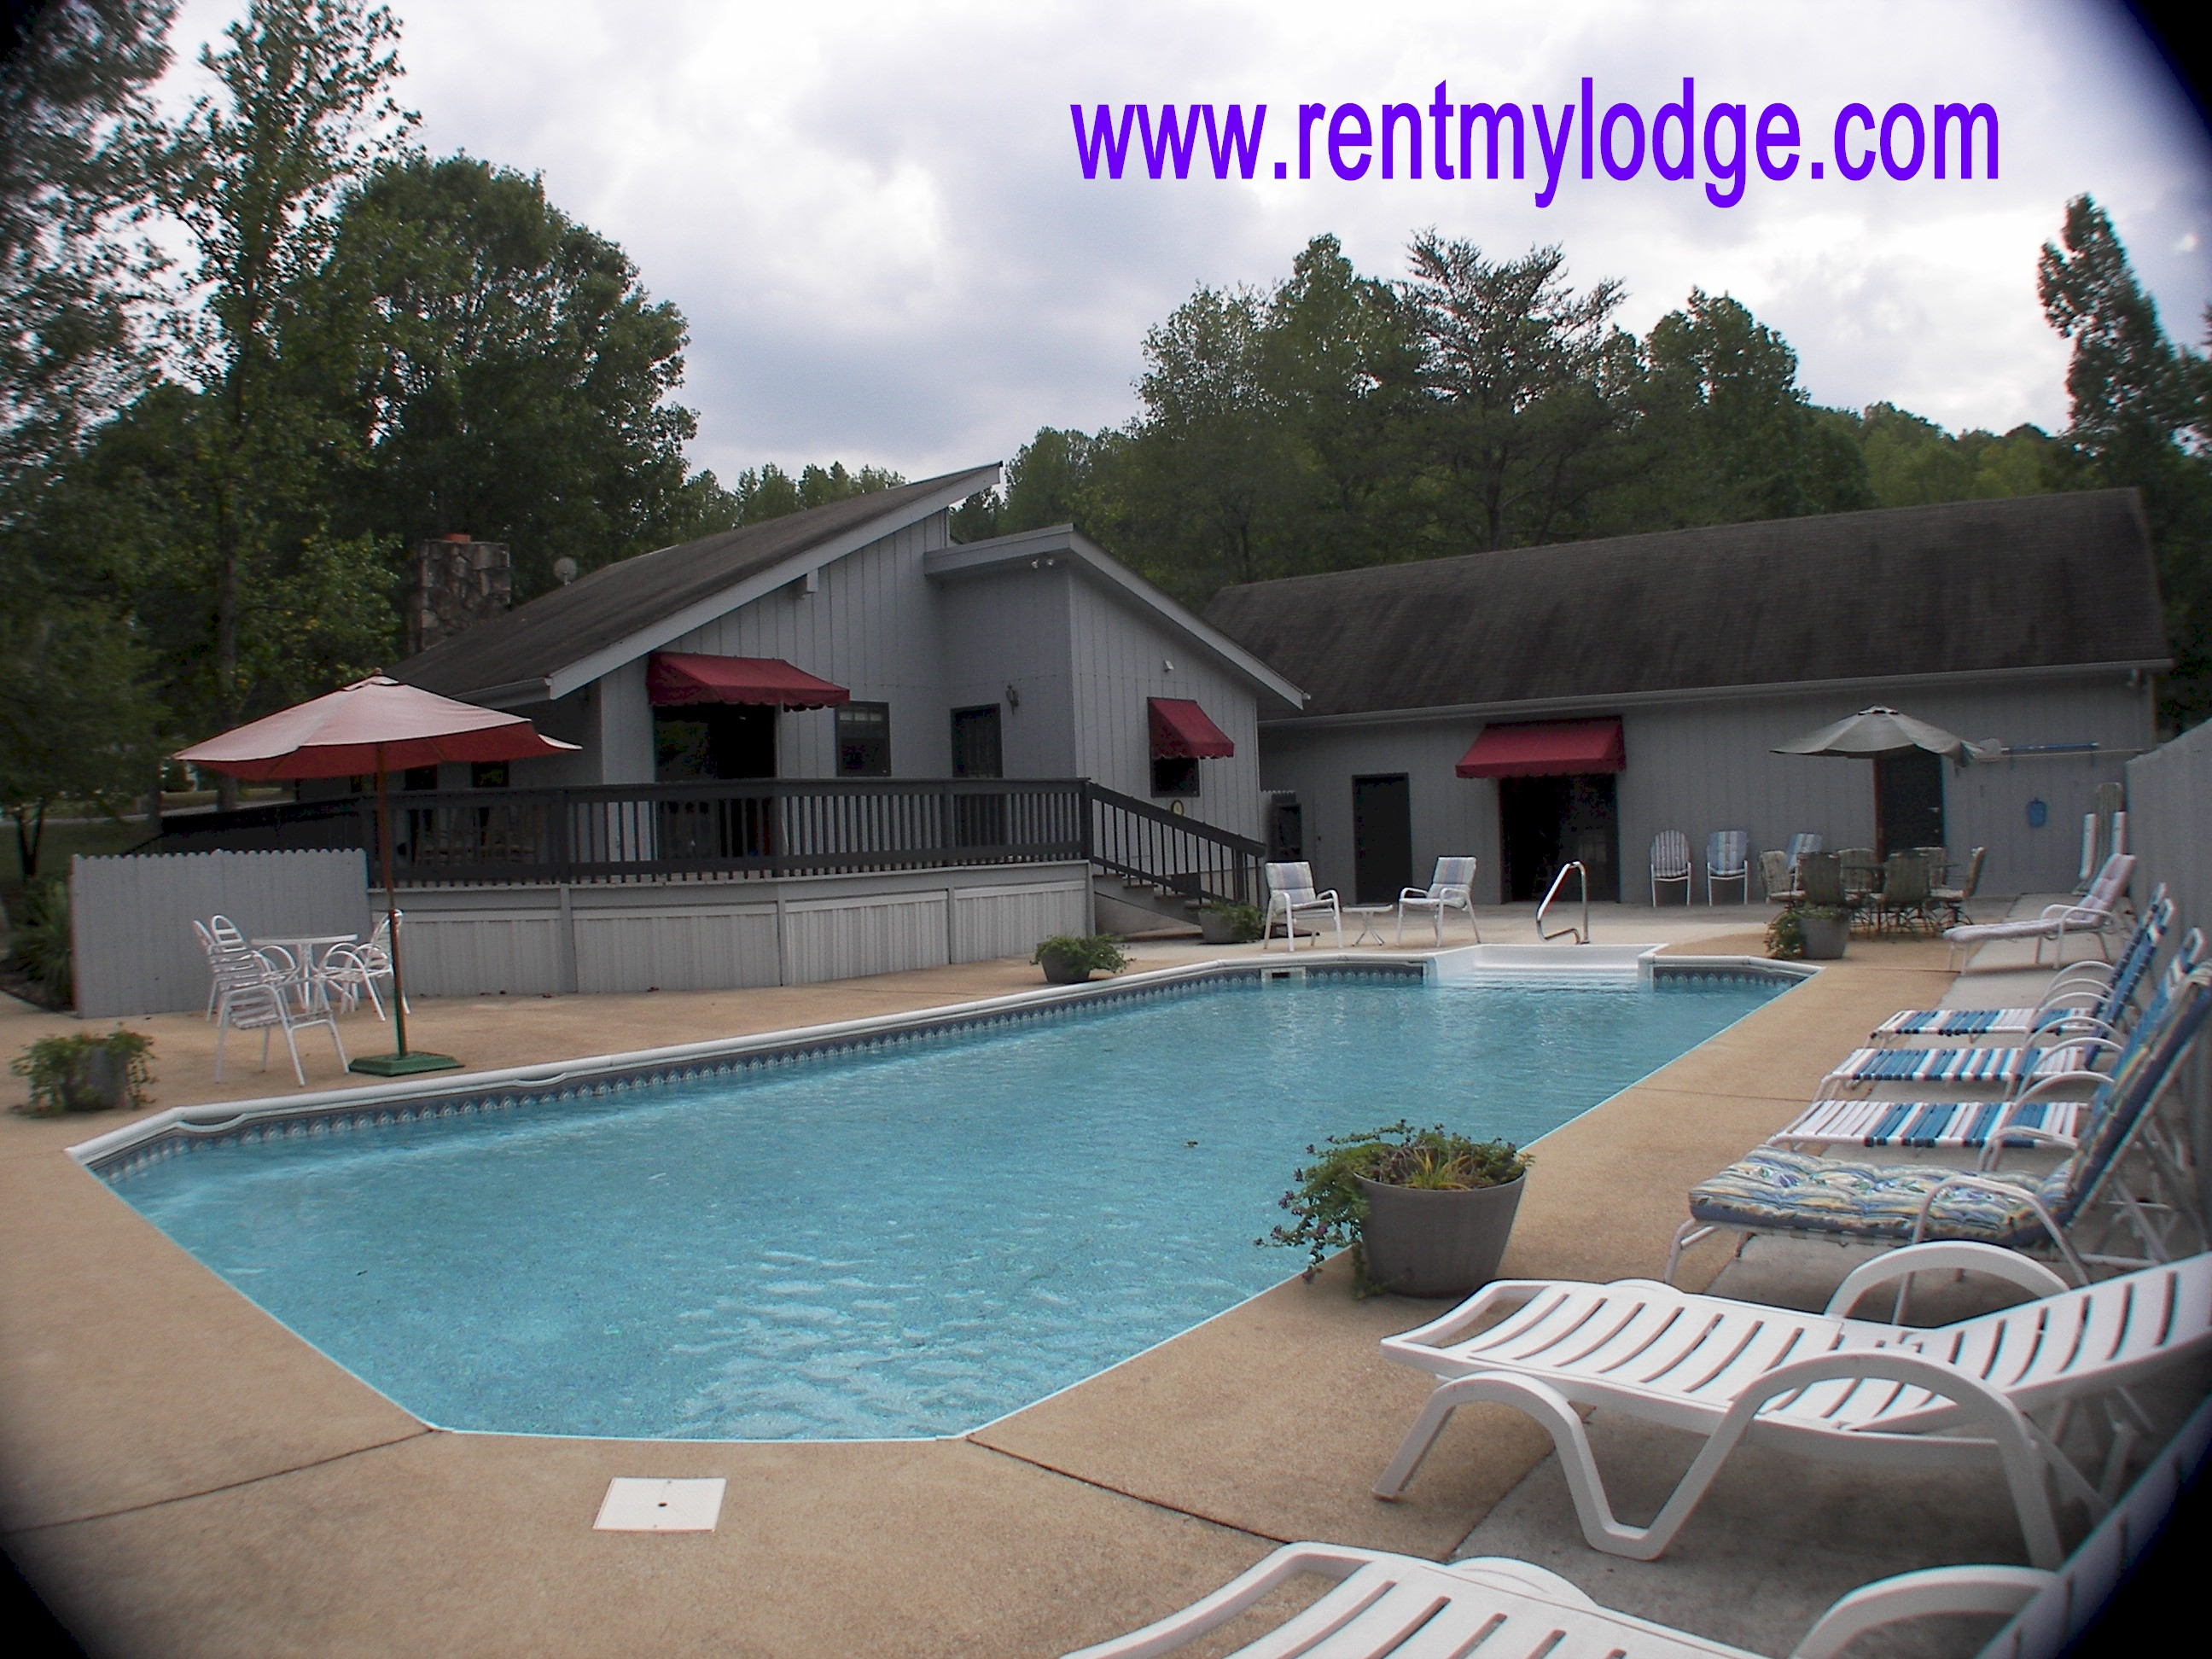 remodel brilliant rent ideas on for cabins rentals decoration chattanooga cabin home with designing